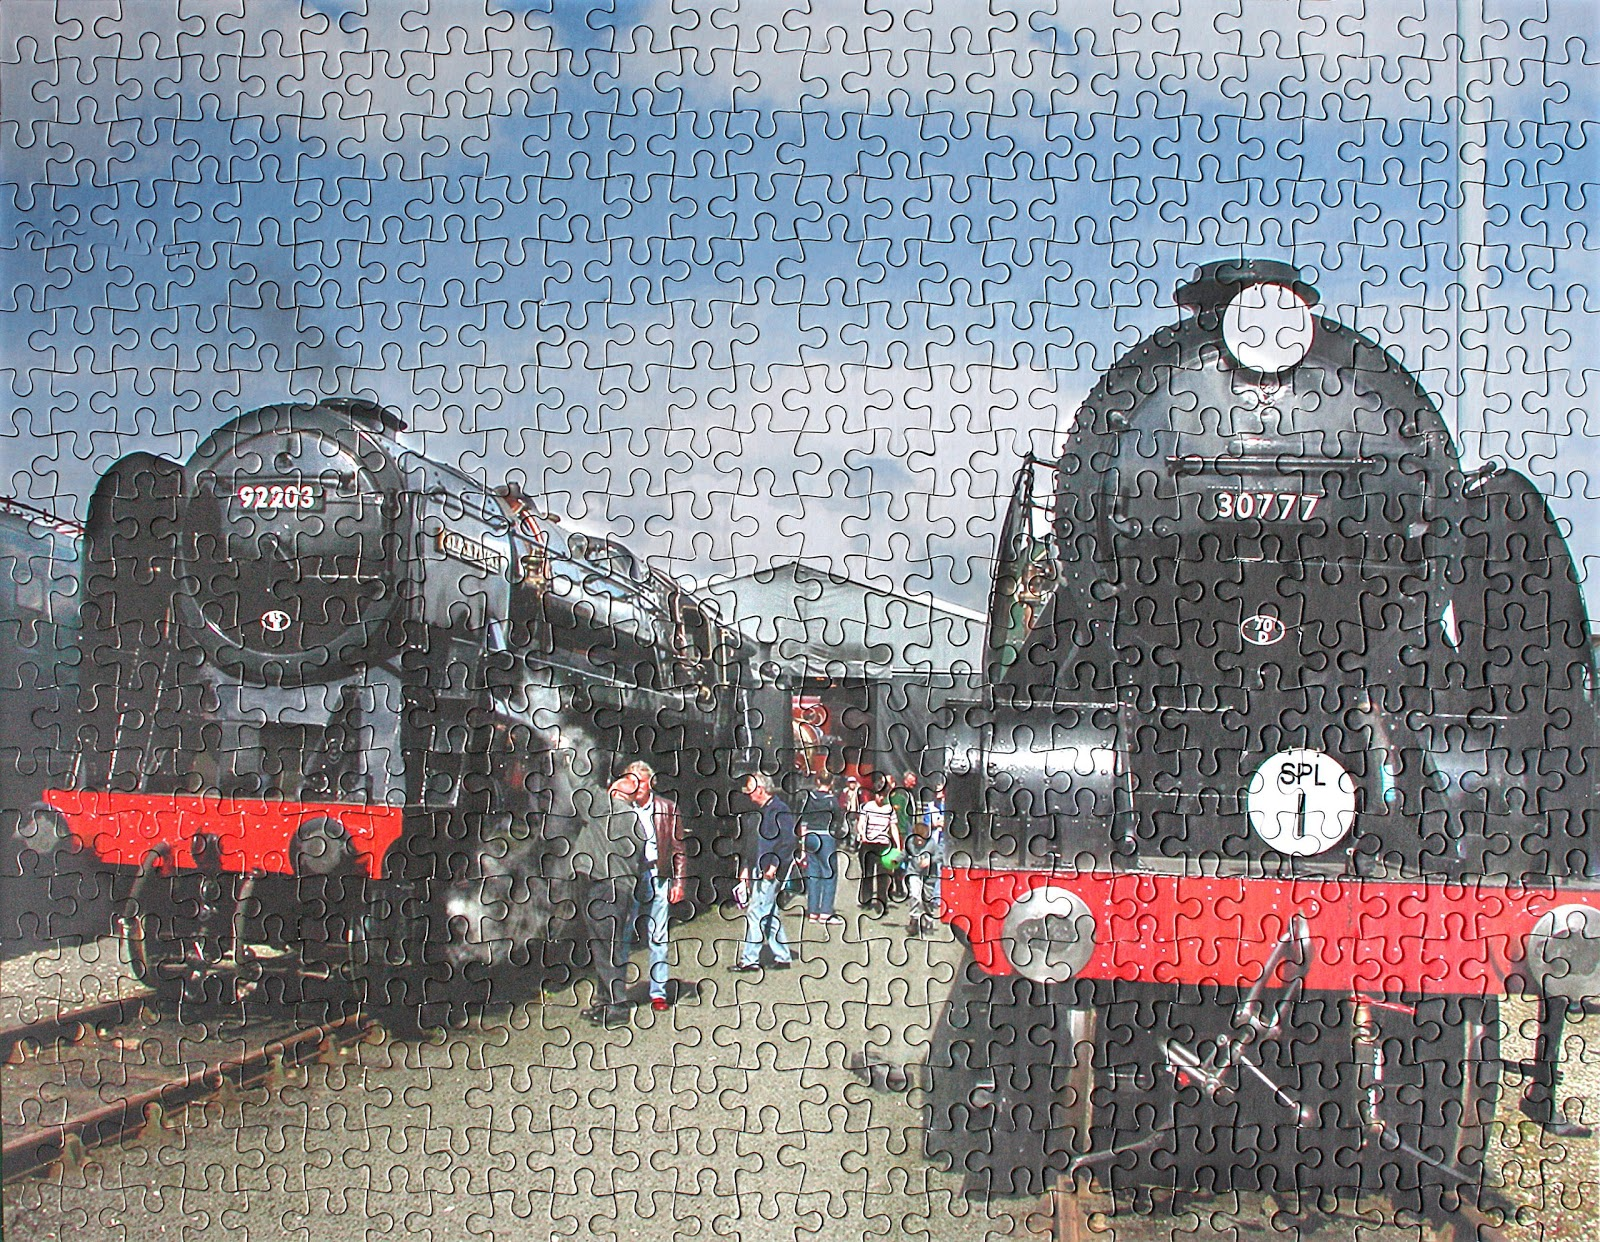 And Steam Trains Steam Jigsaw Puzzles2012 f76gYby